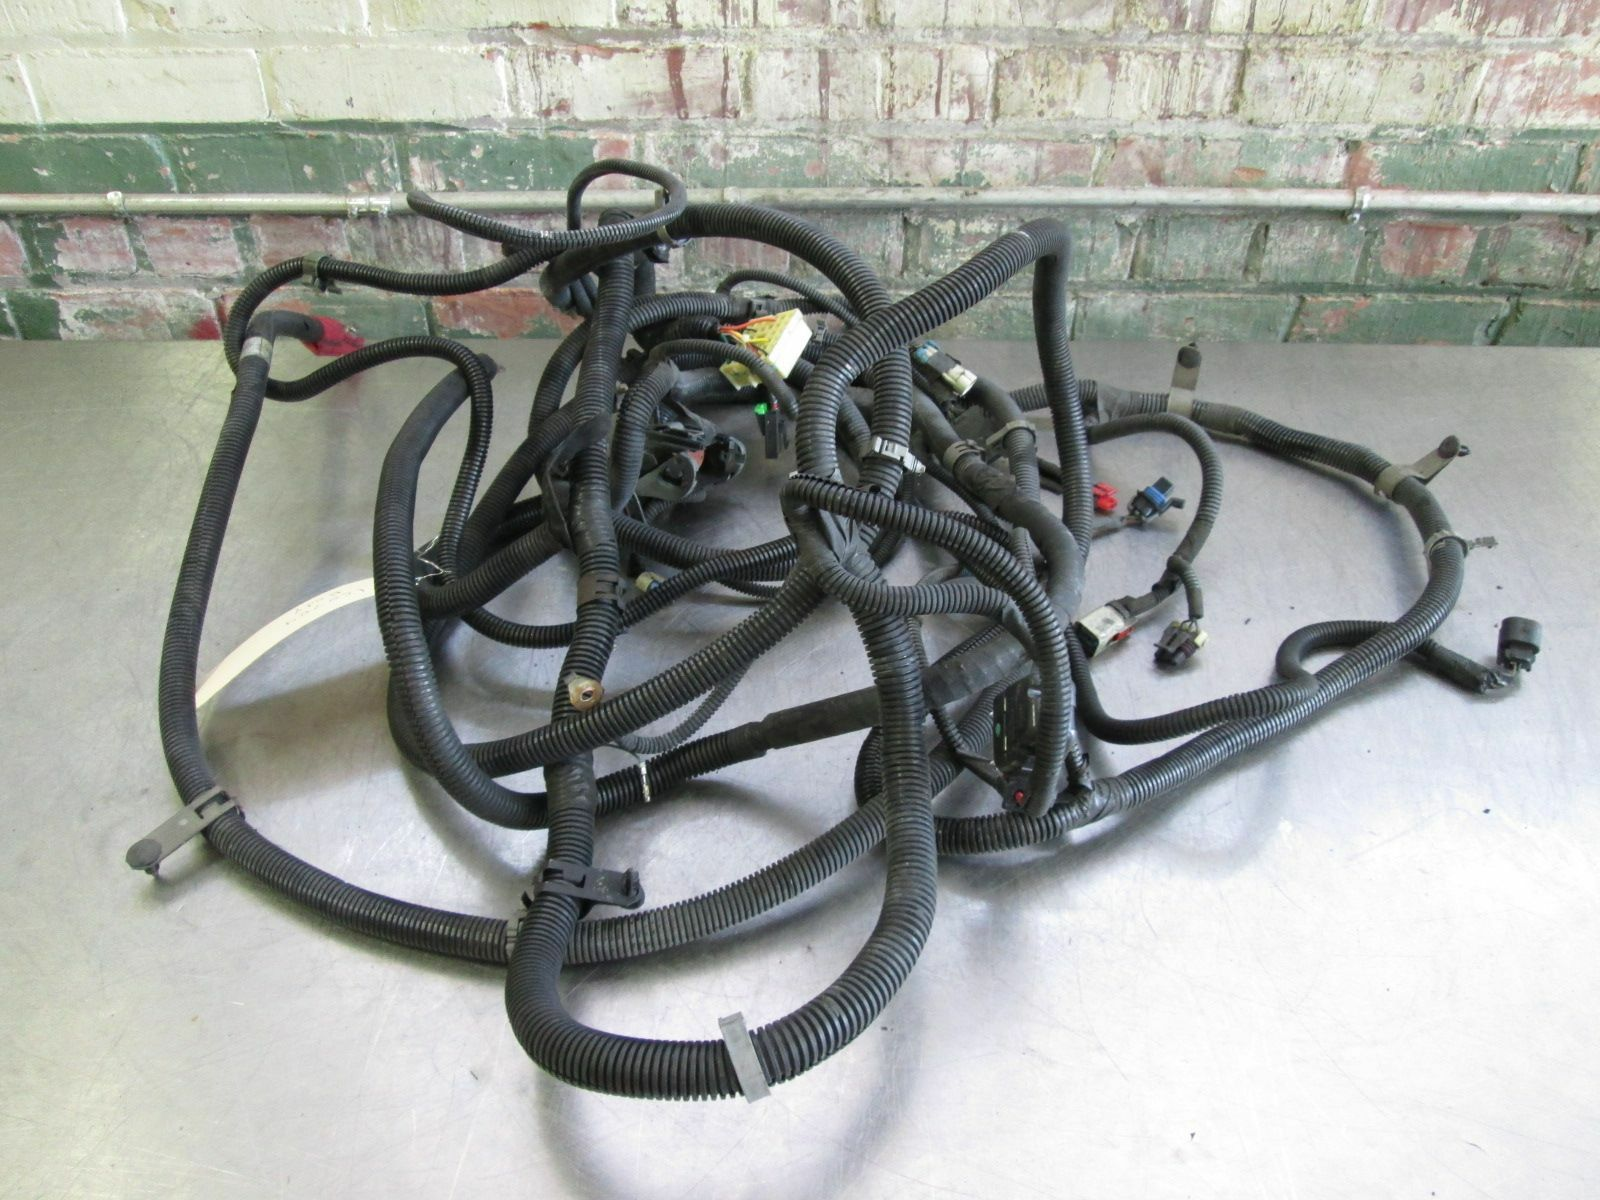 Chevrolet Wire Harness Wiring Library Chevy Cruze Grommet Body Chassis